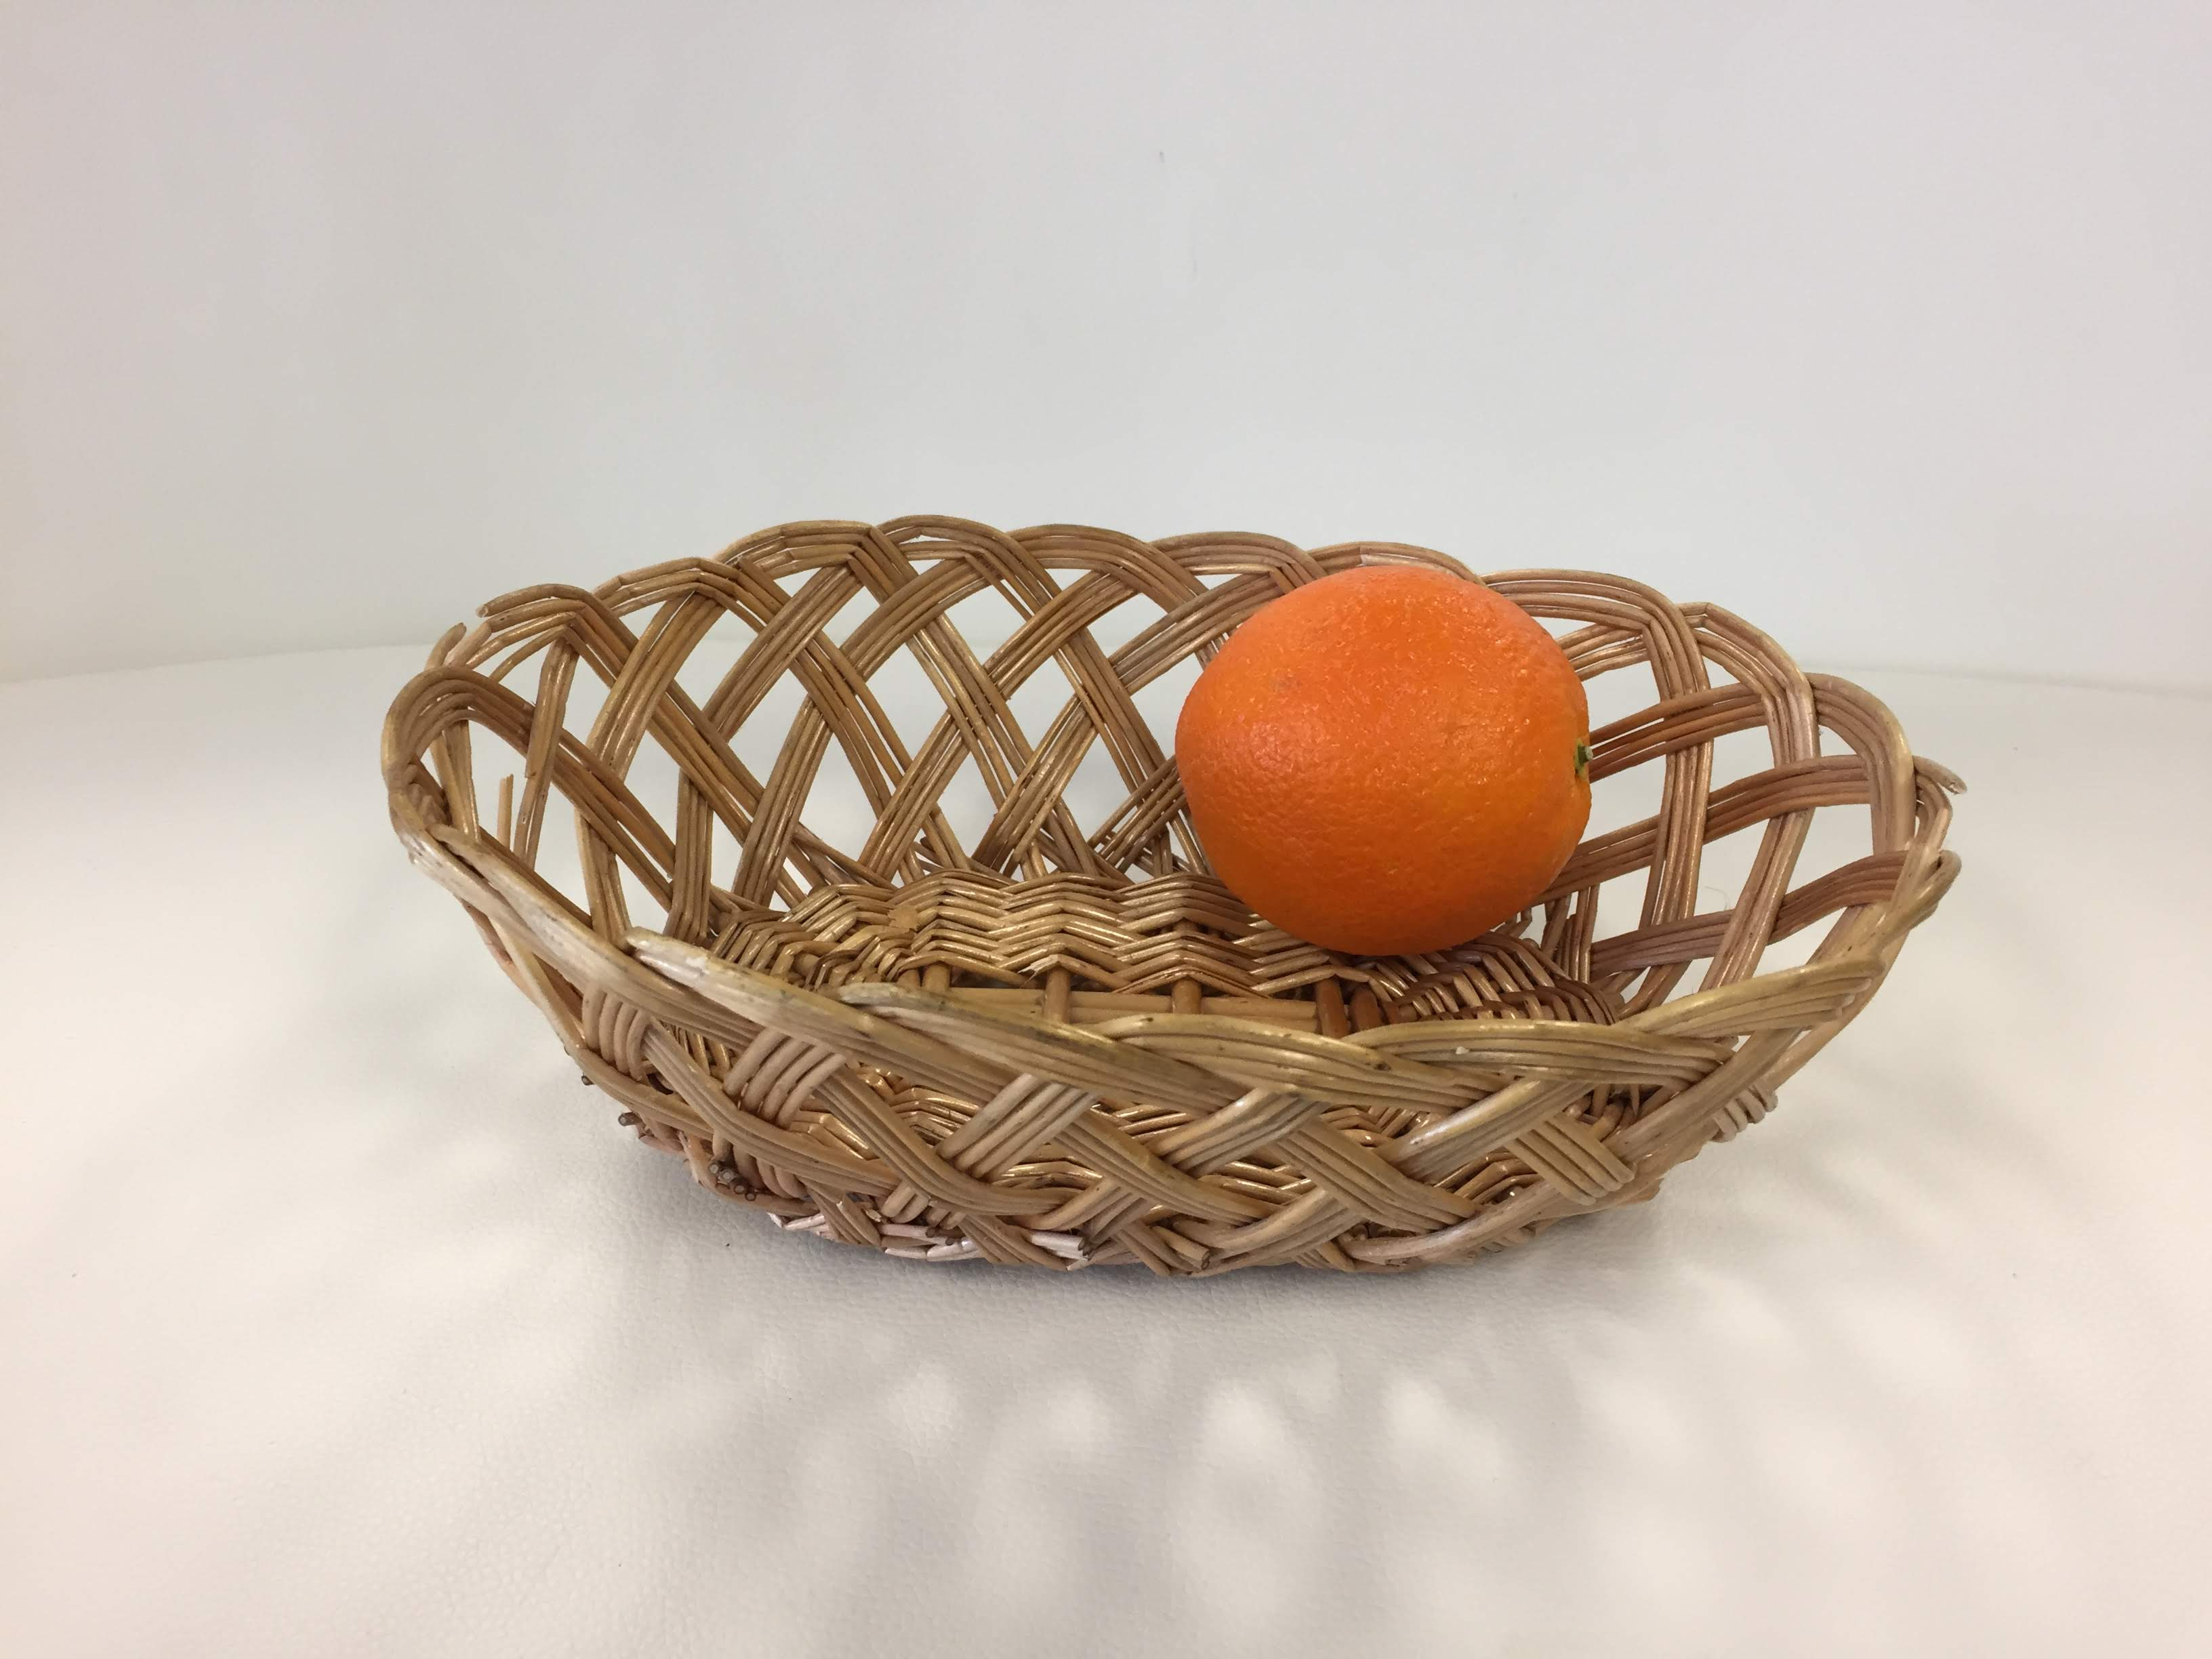 Rent Wicker Bread/Roll Basket